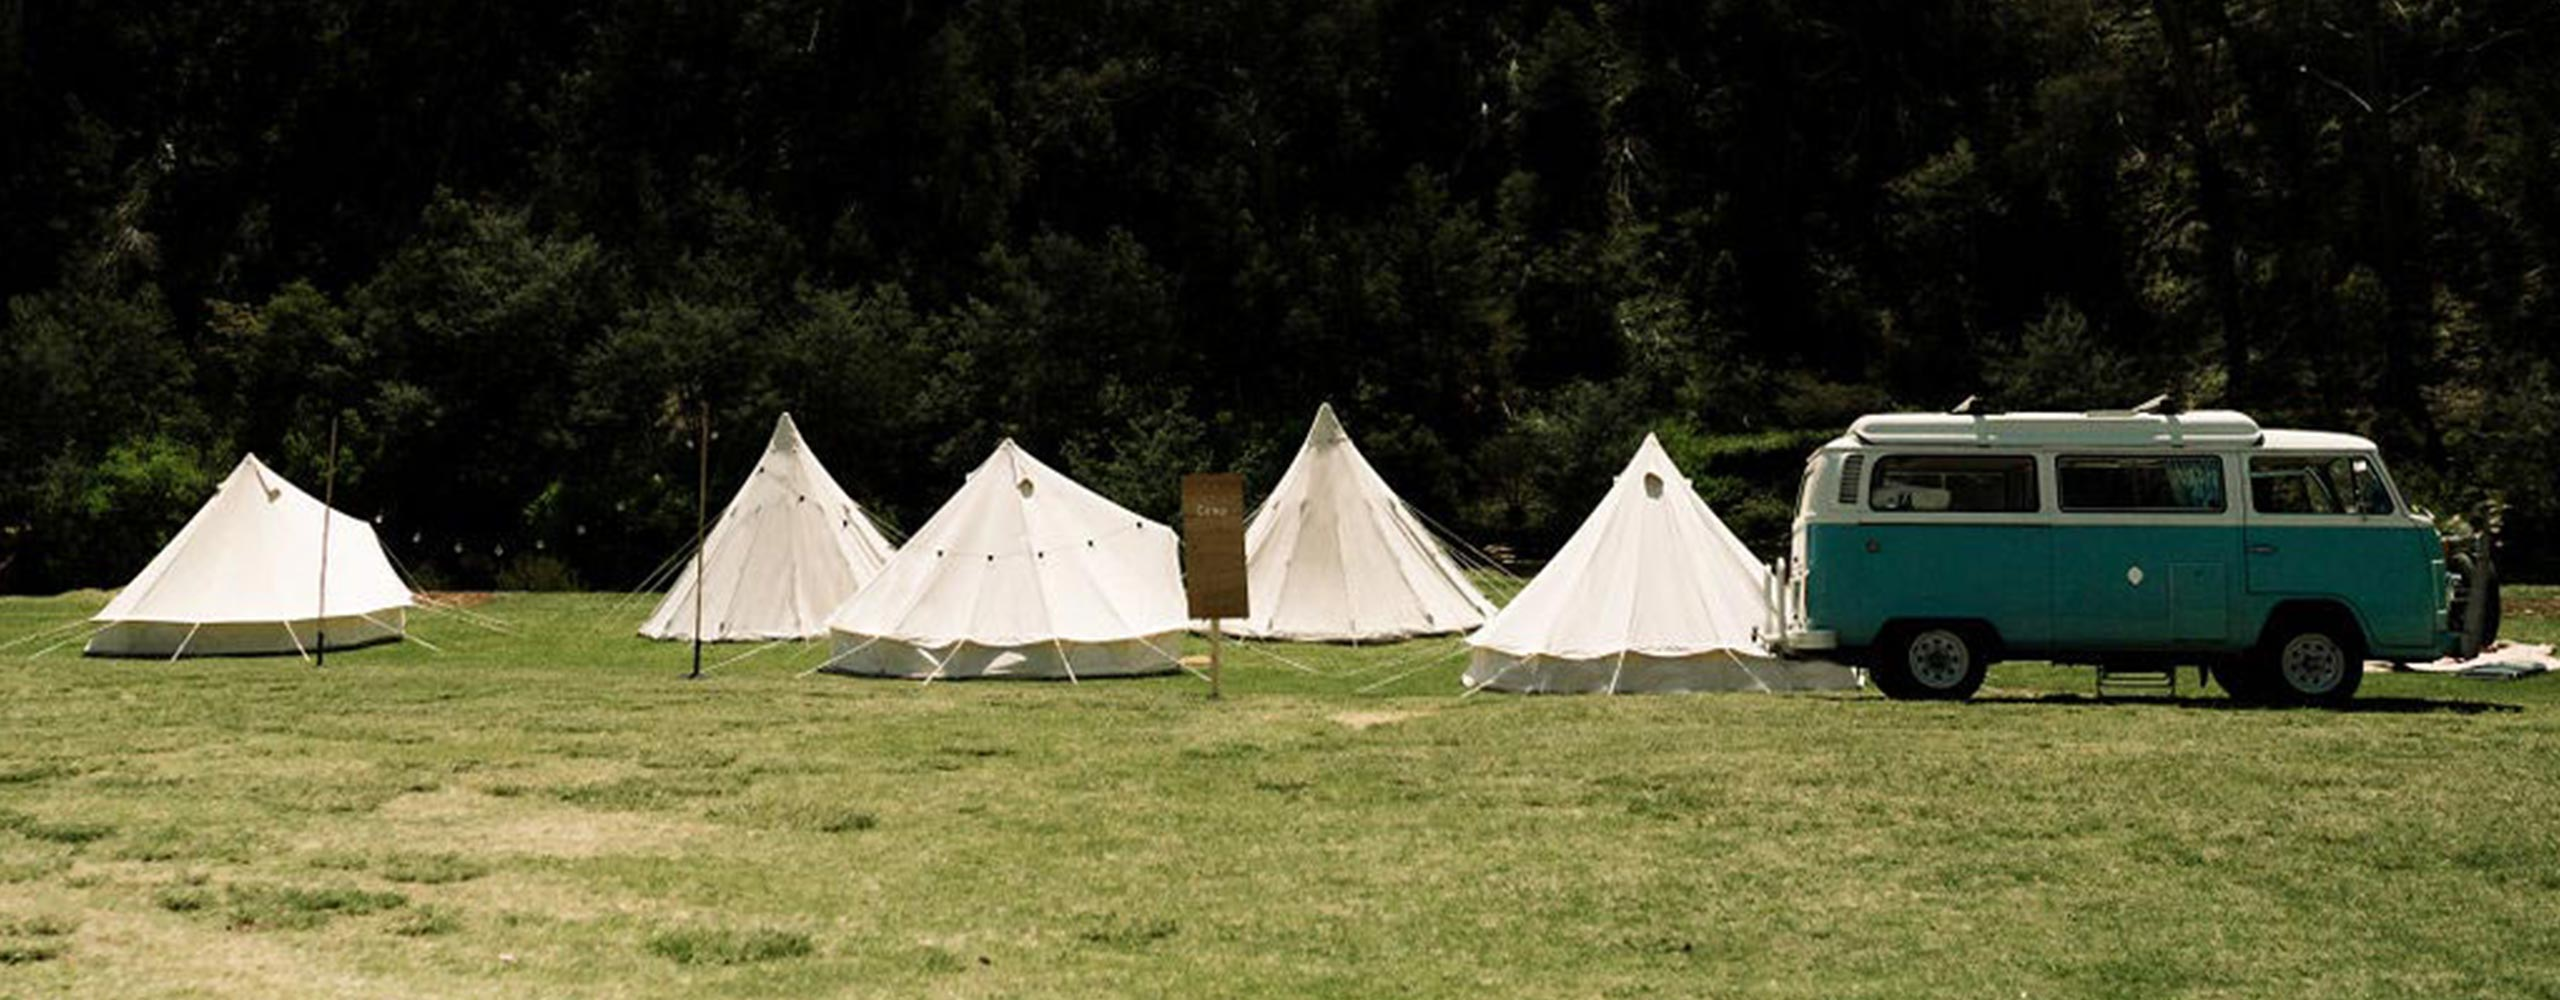 Glamping — group of bell tents and tipi tents pitched in Gippsland, Victoria